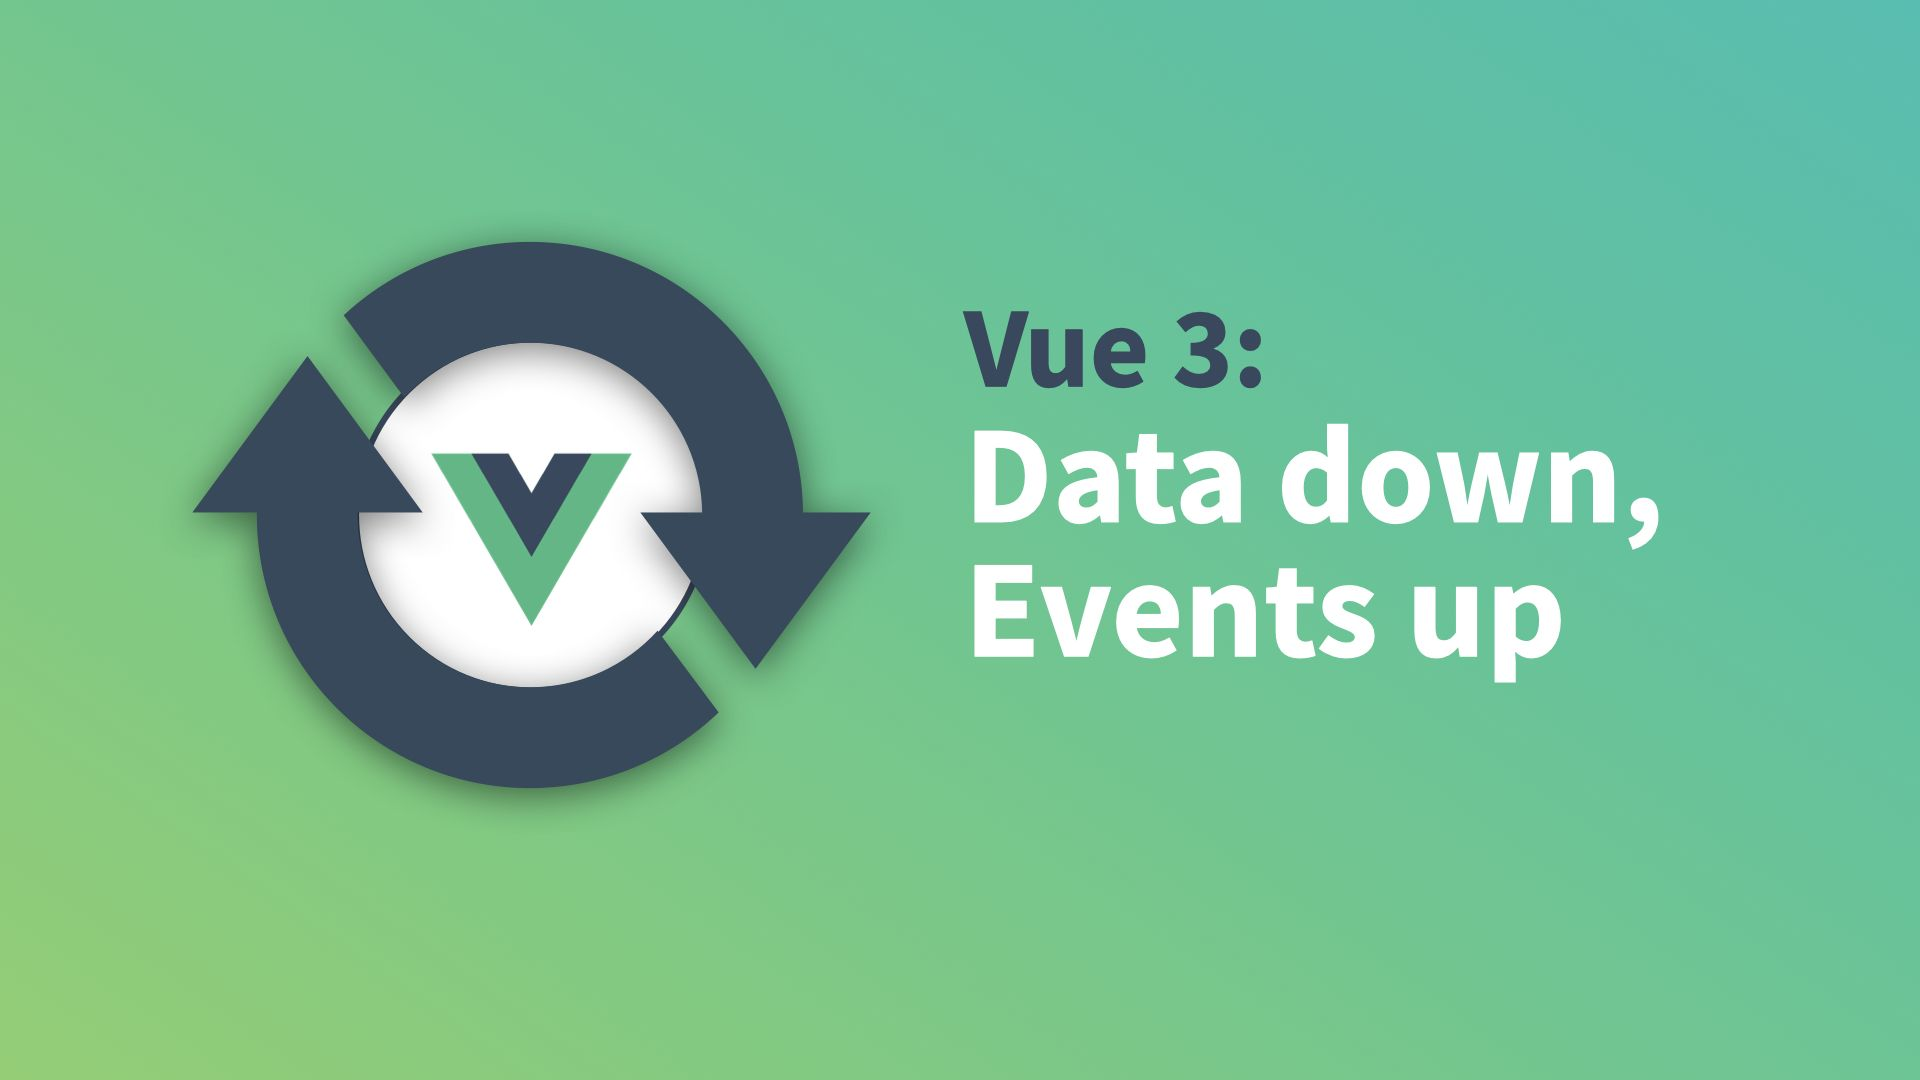 Vue 3: Data down, Events up